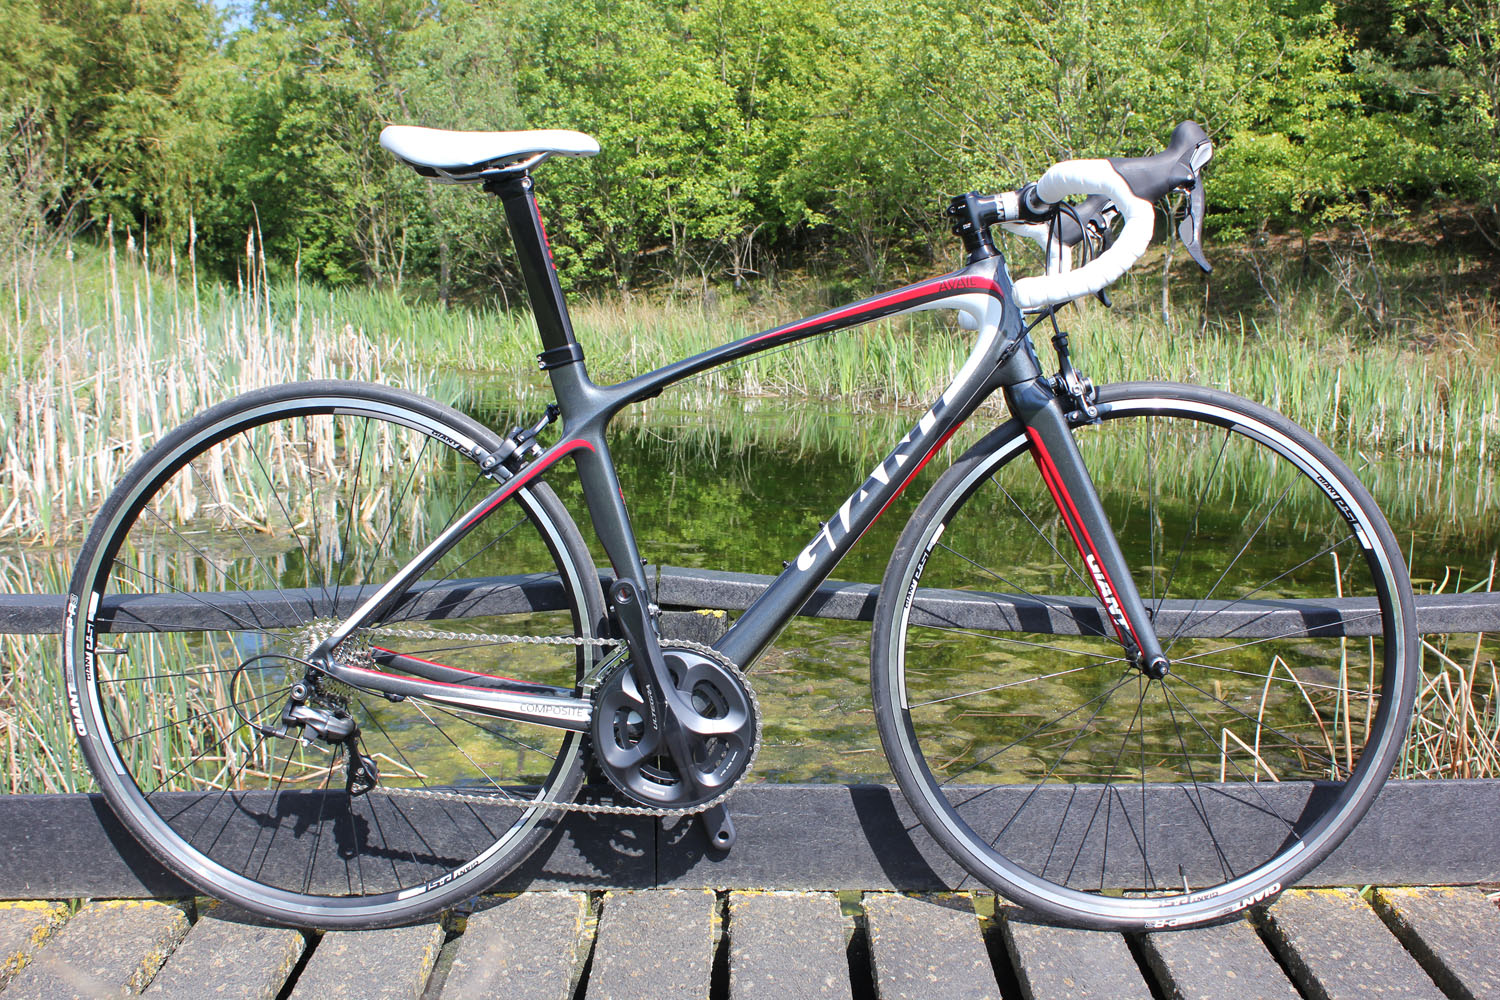 Giant Avail Composite 1 2013 review - The Bike List